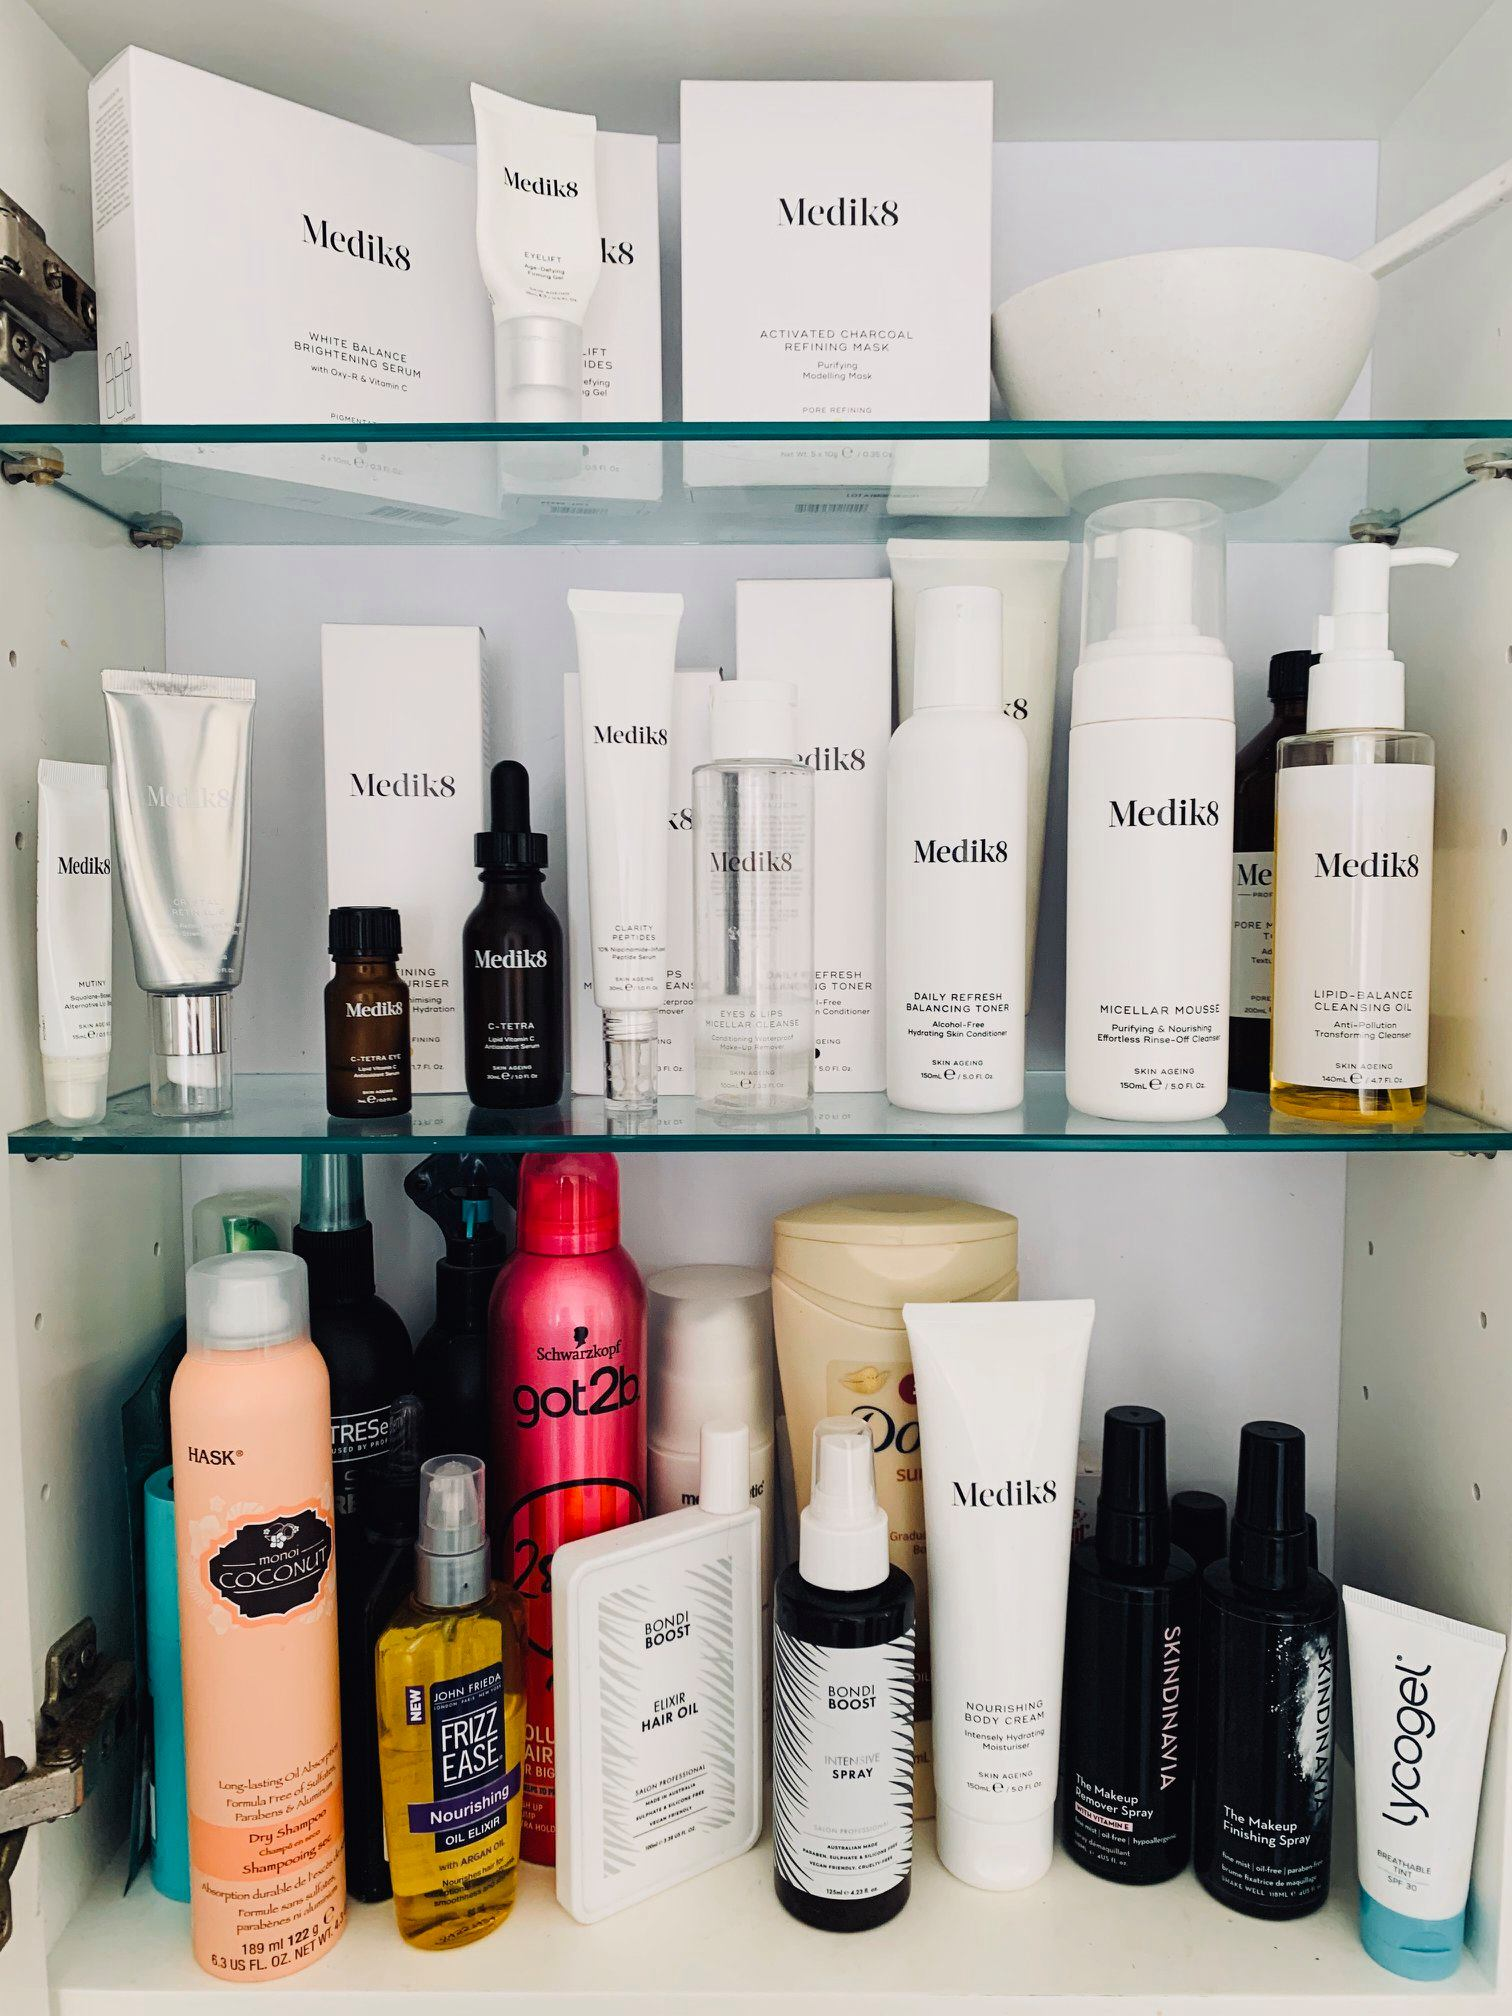 STAFF SHELFIE SERIES: Sonia Swift, Brand Manager. Current Fave: Medik8 Lipid B...